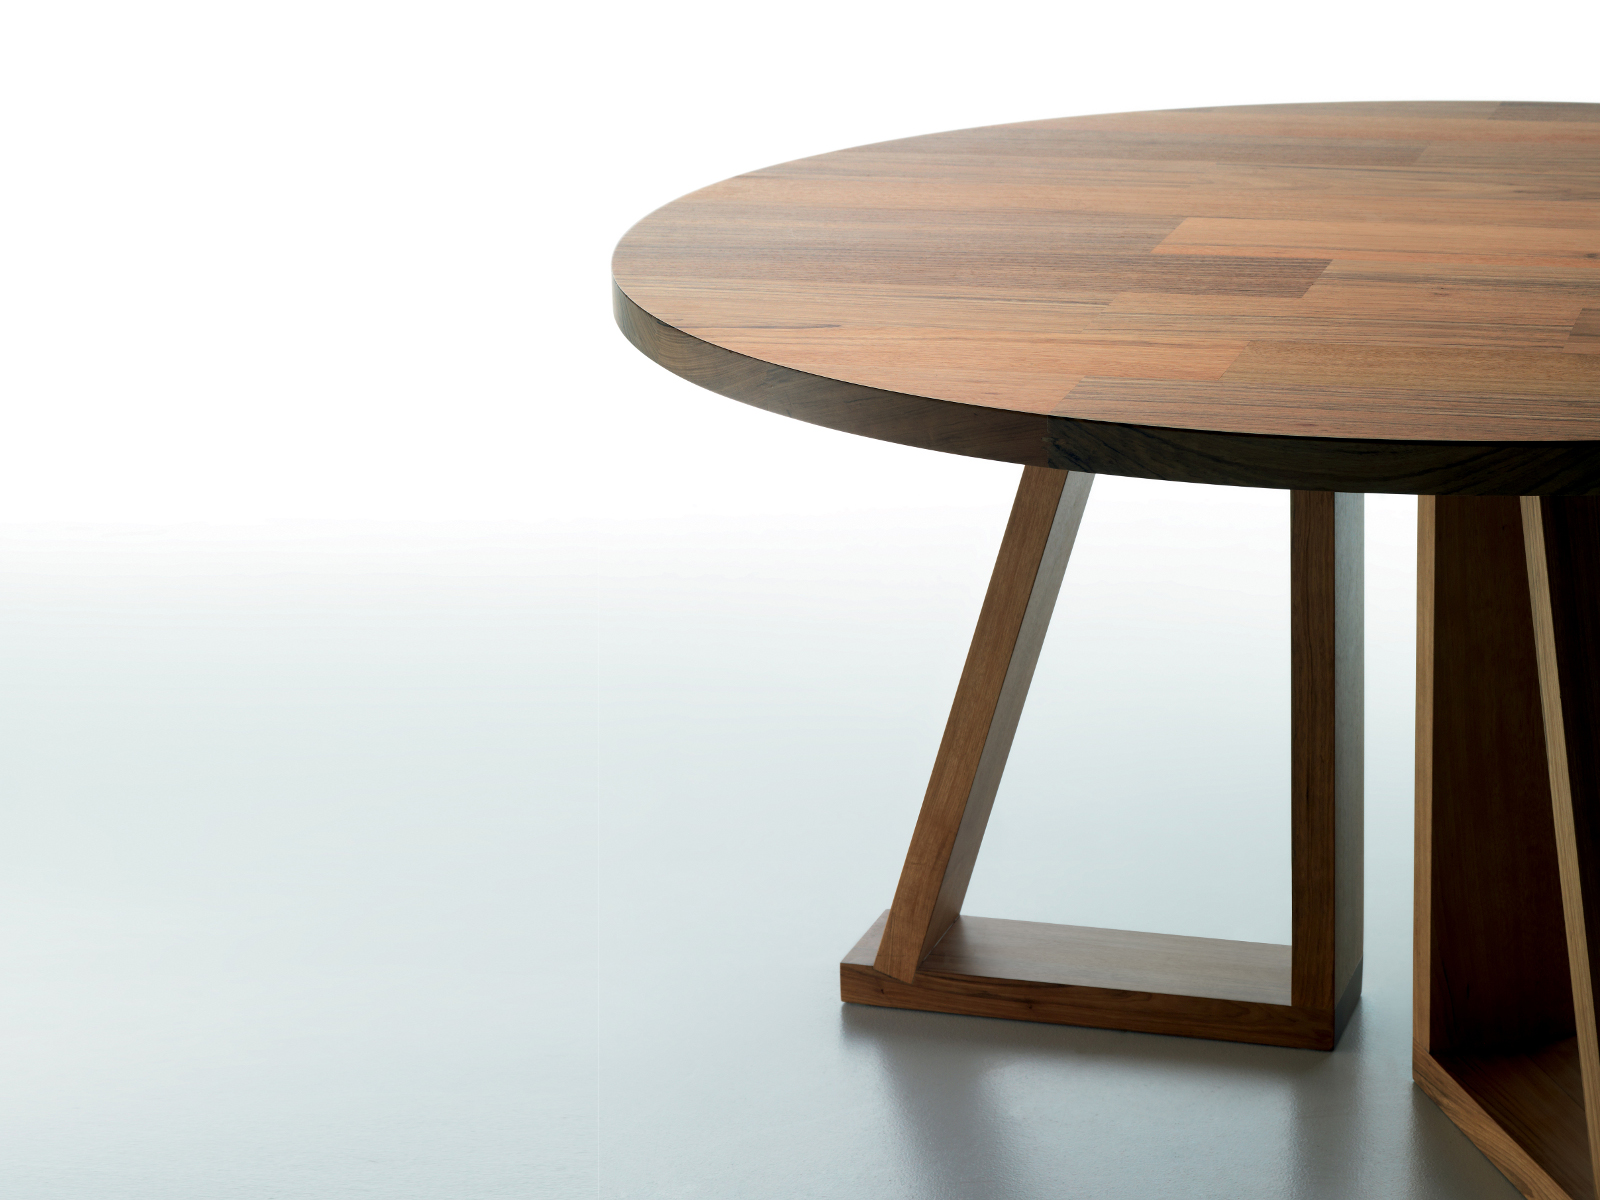 ROUND SOLID WOOD COFFEE TABLE SOLID BY MINIFORMS